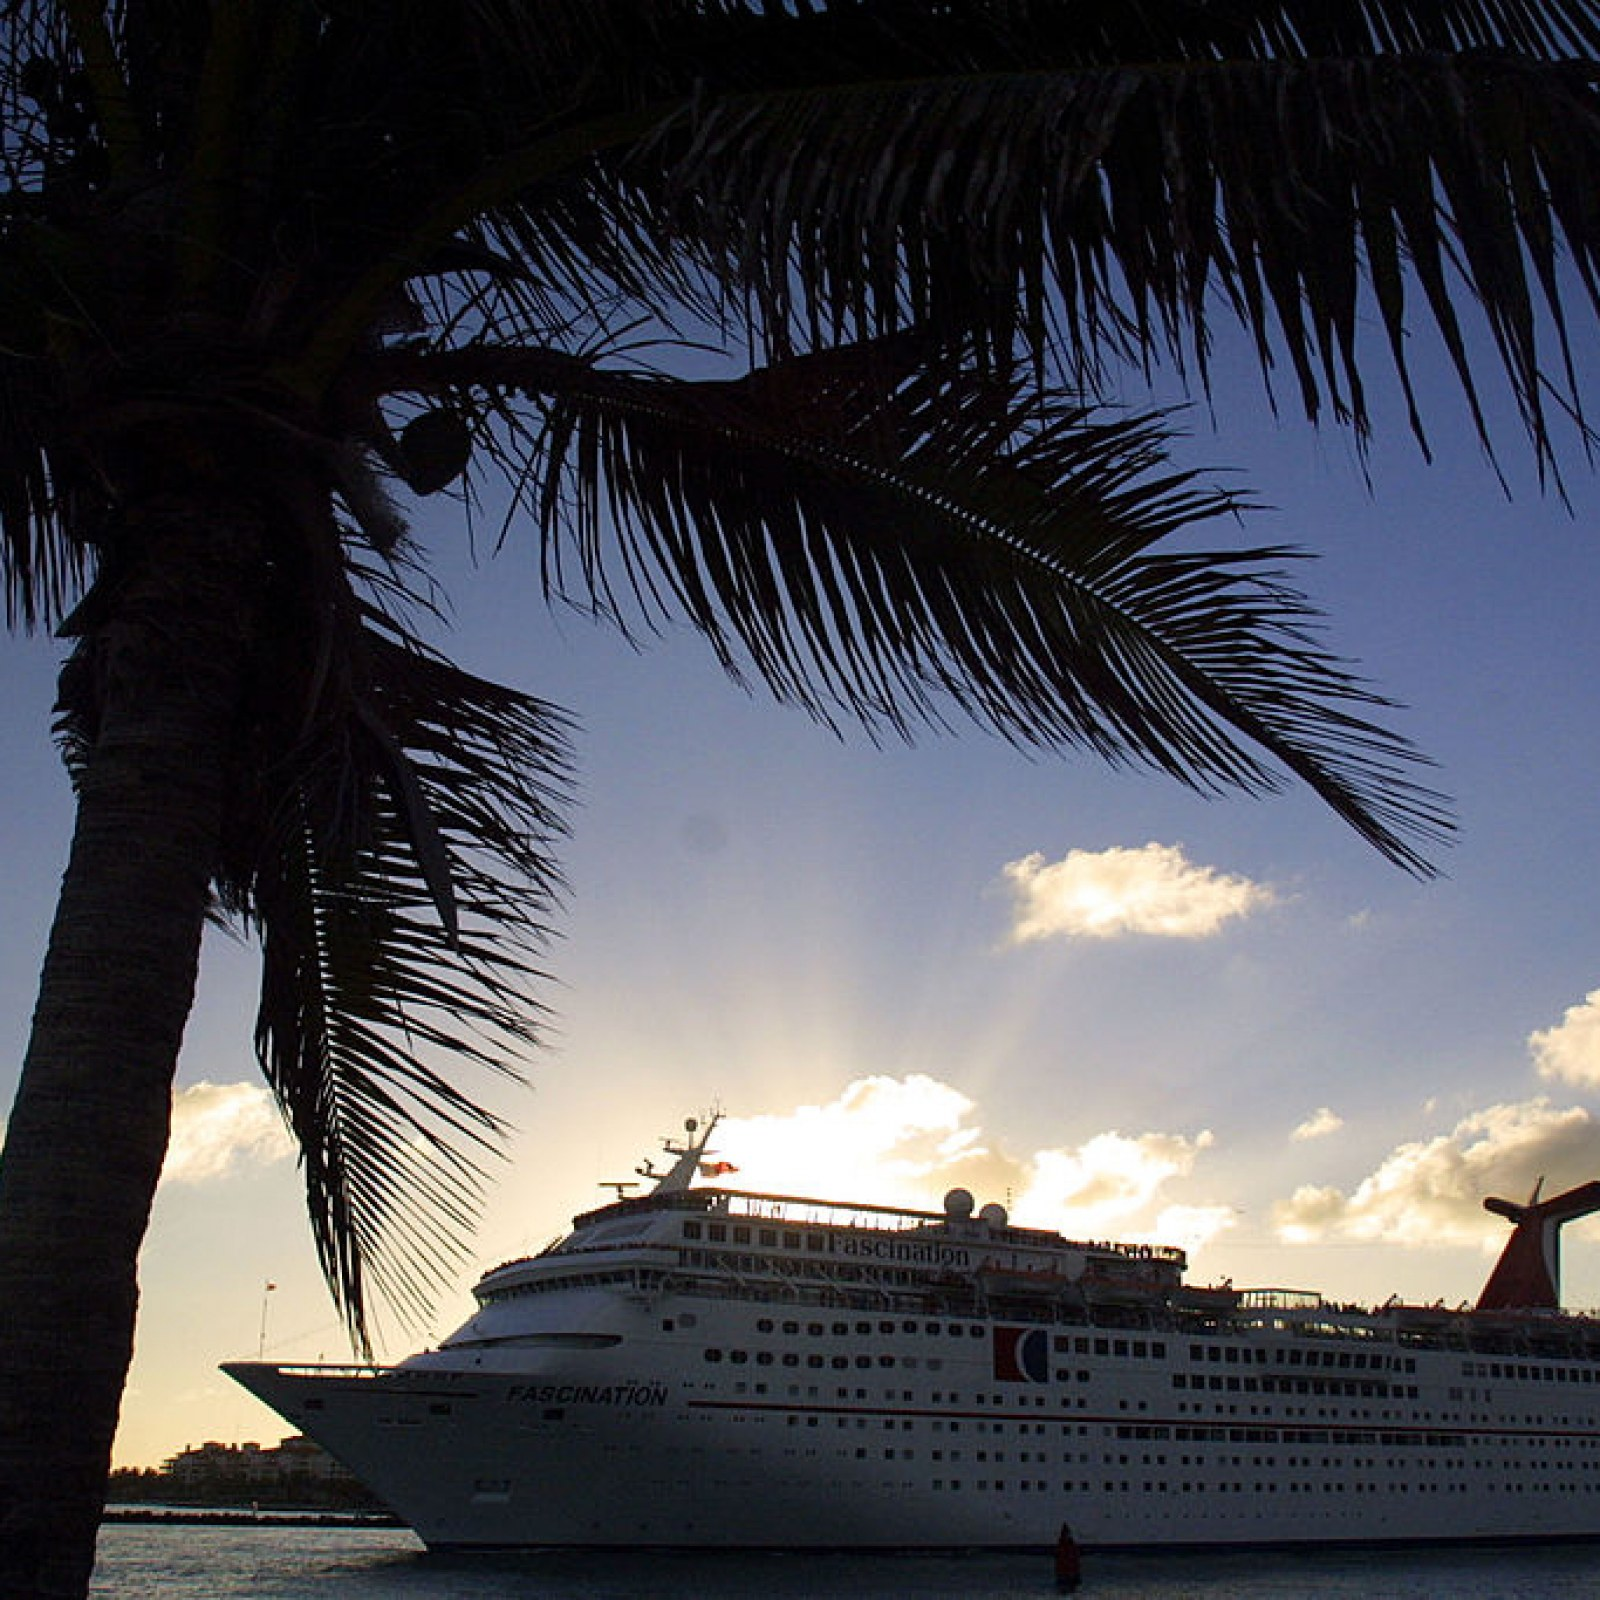 Man Drowns in Cruise Ship Swimming Pool After Partying on